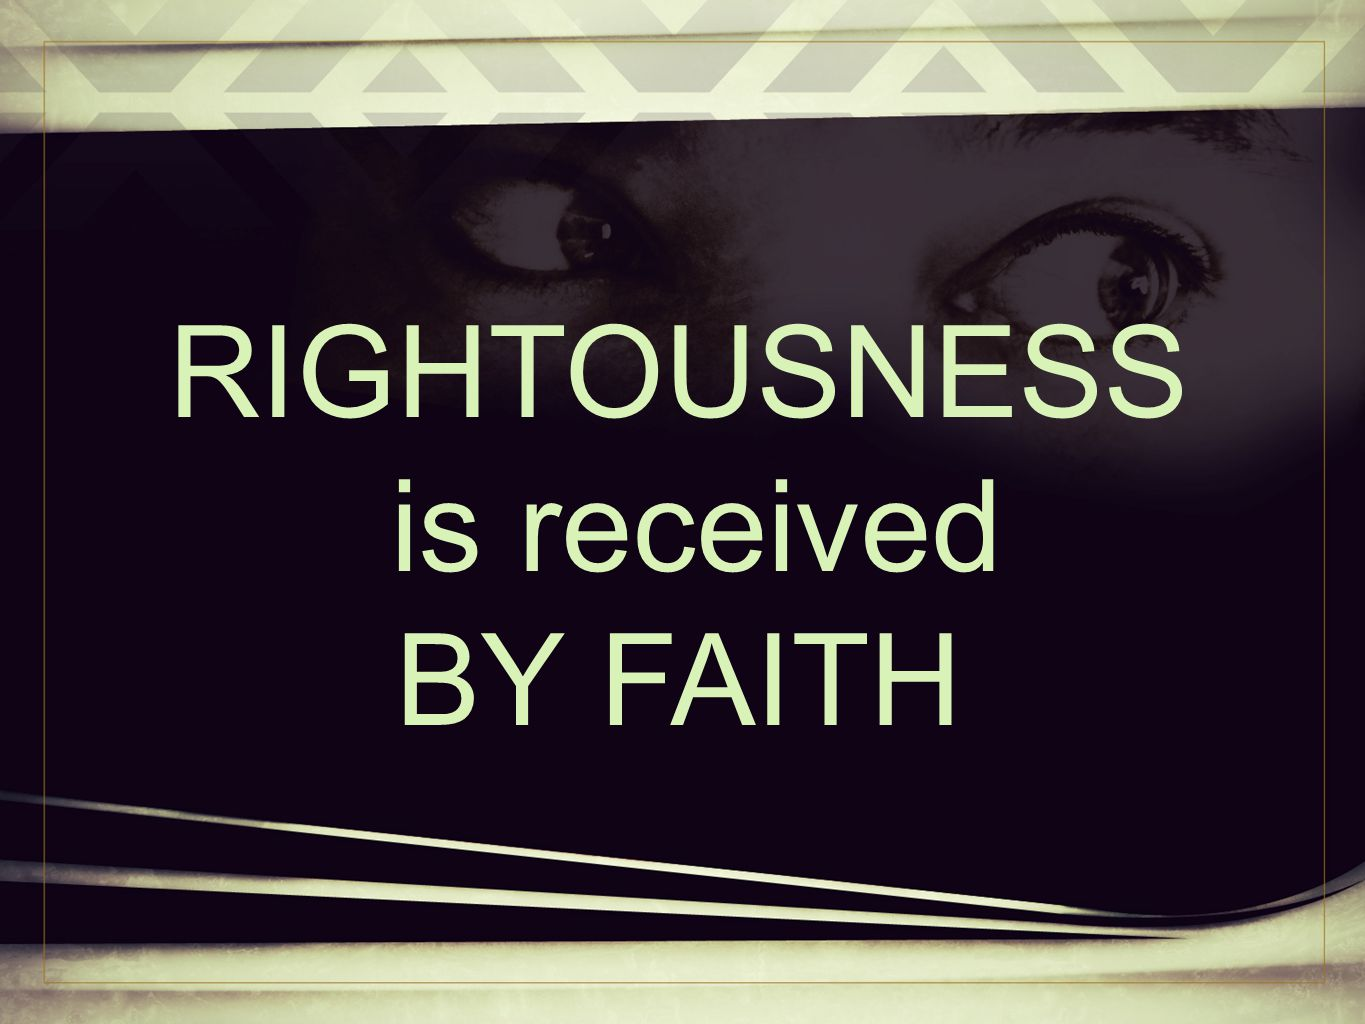 RIGHTOUSNESS is received BY FAITH